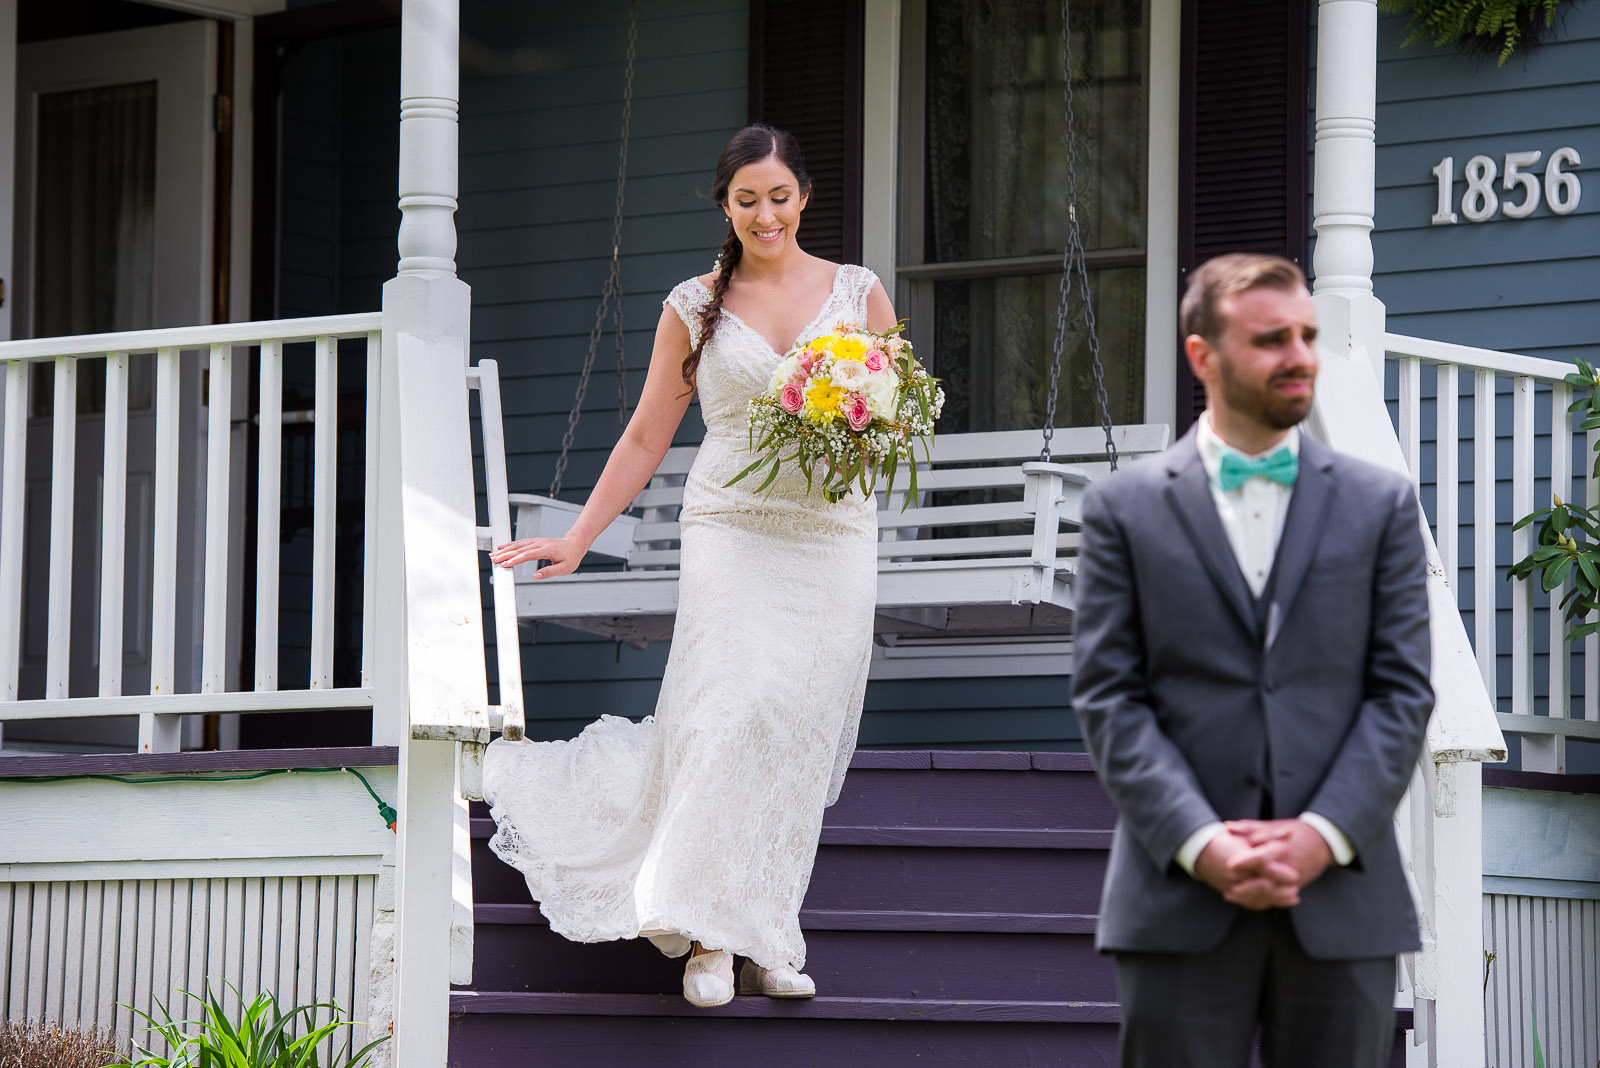 Eric_and_Christy_Photography_Blog_Katie_Travis_Wedding-4